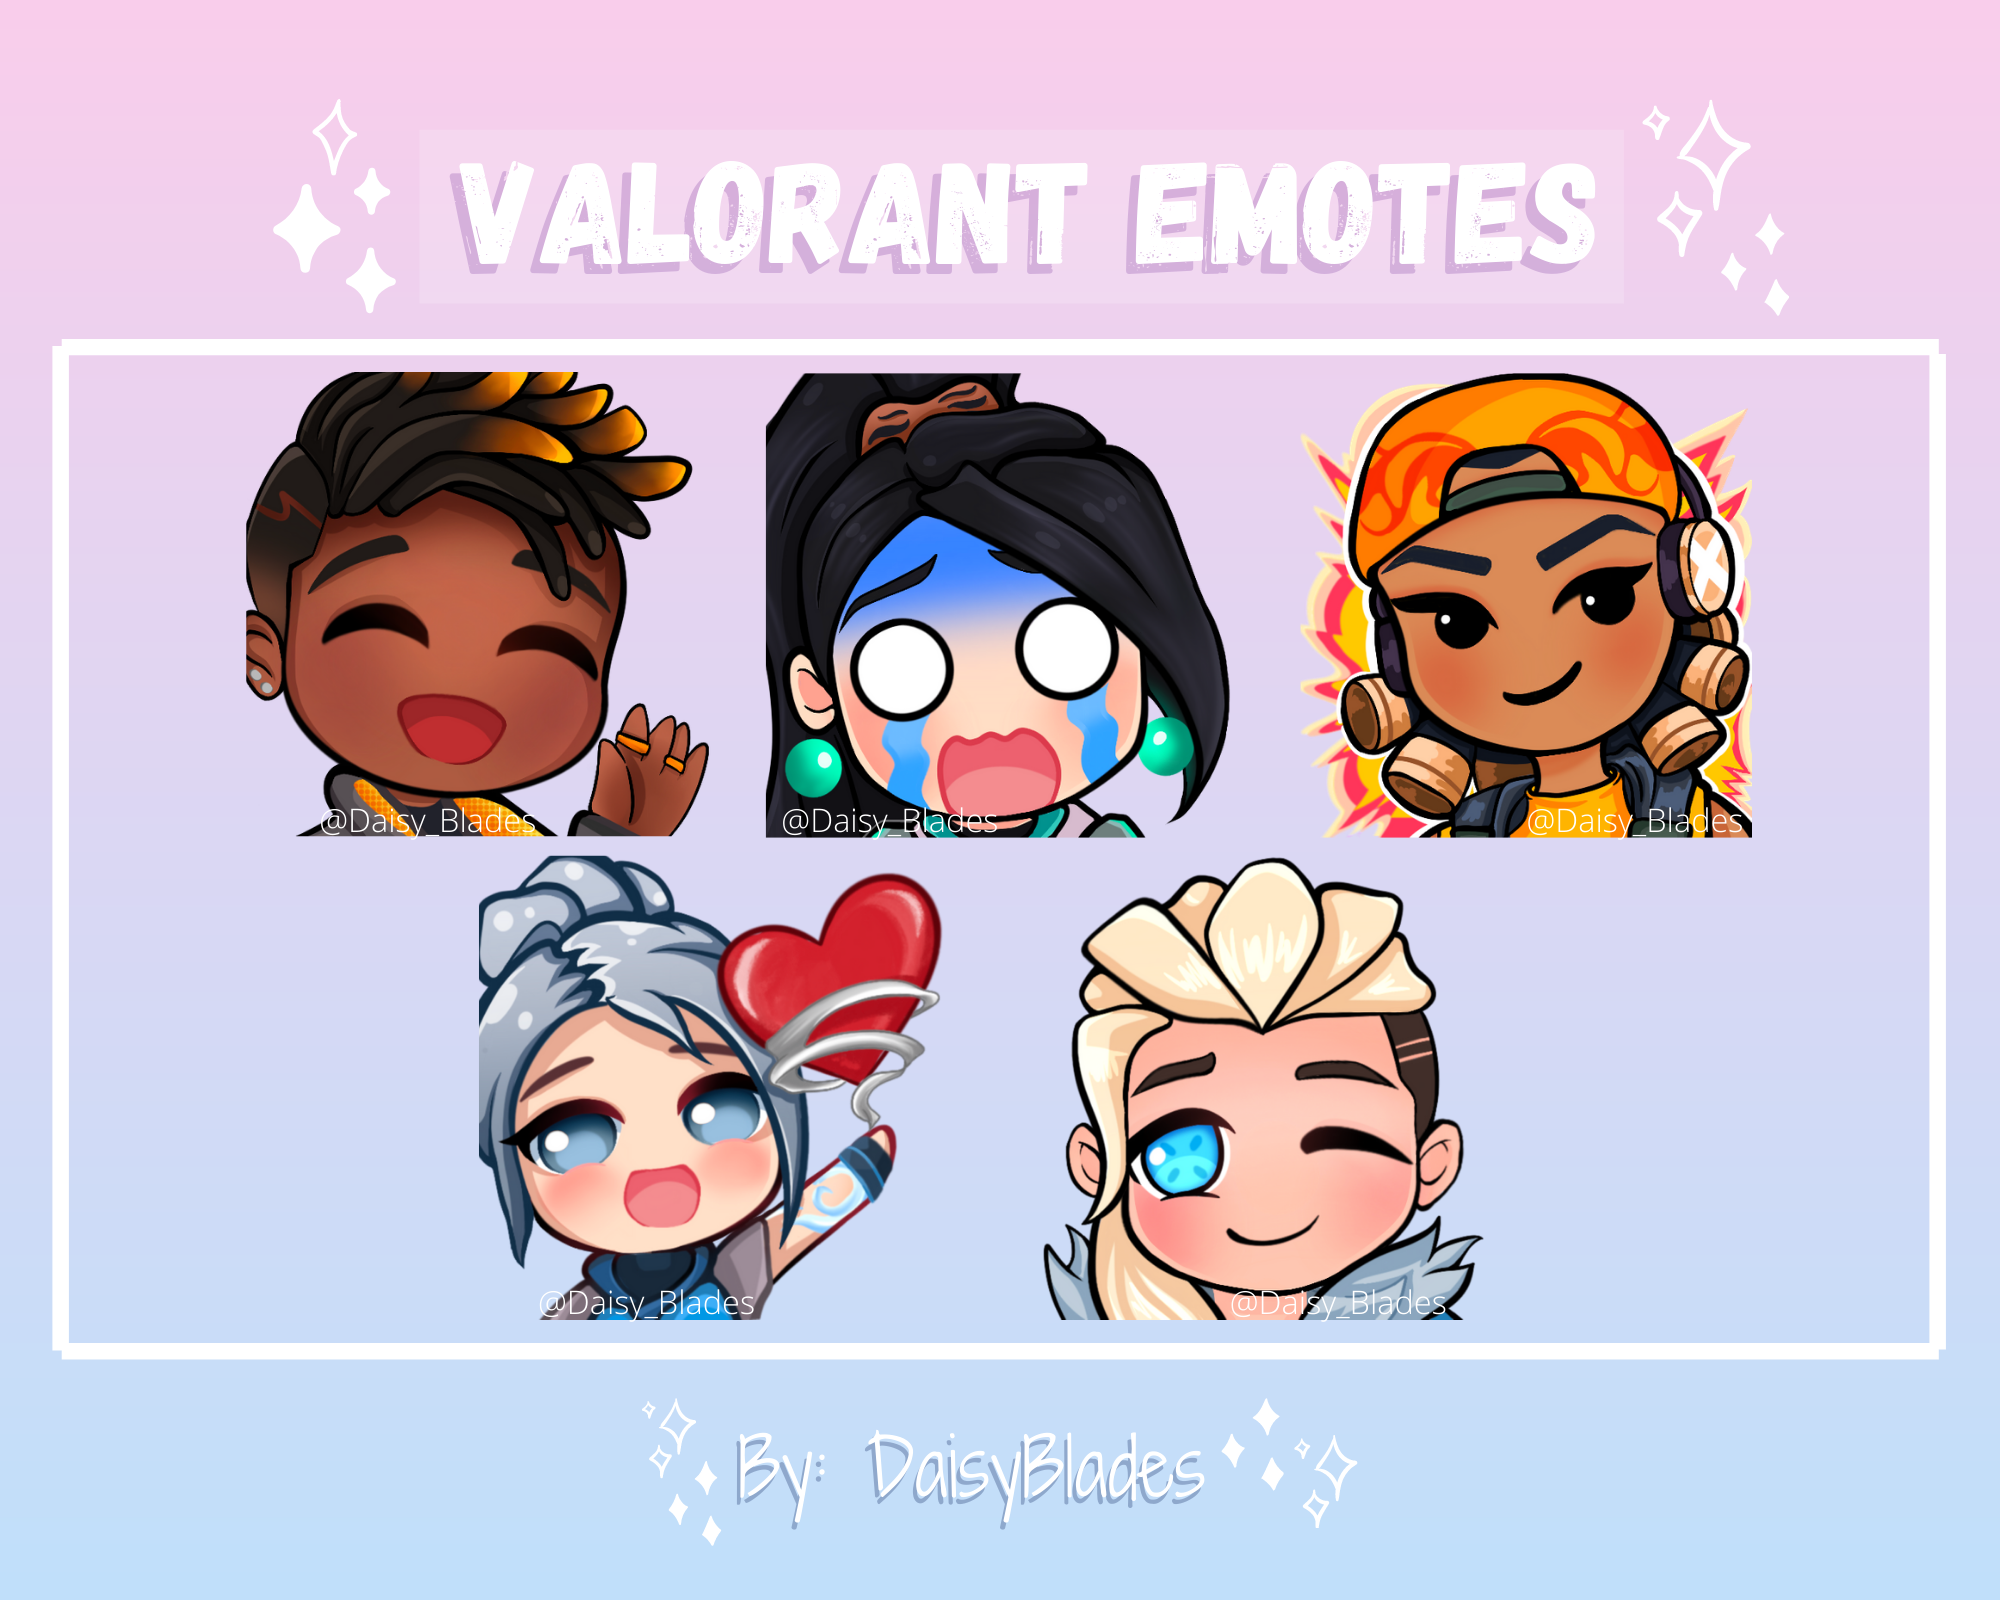 Premade Twitch Emotes 5 Valorant Characters Etsy In 2021 Cute Anime Character Twitch Character Design